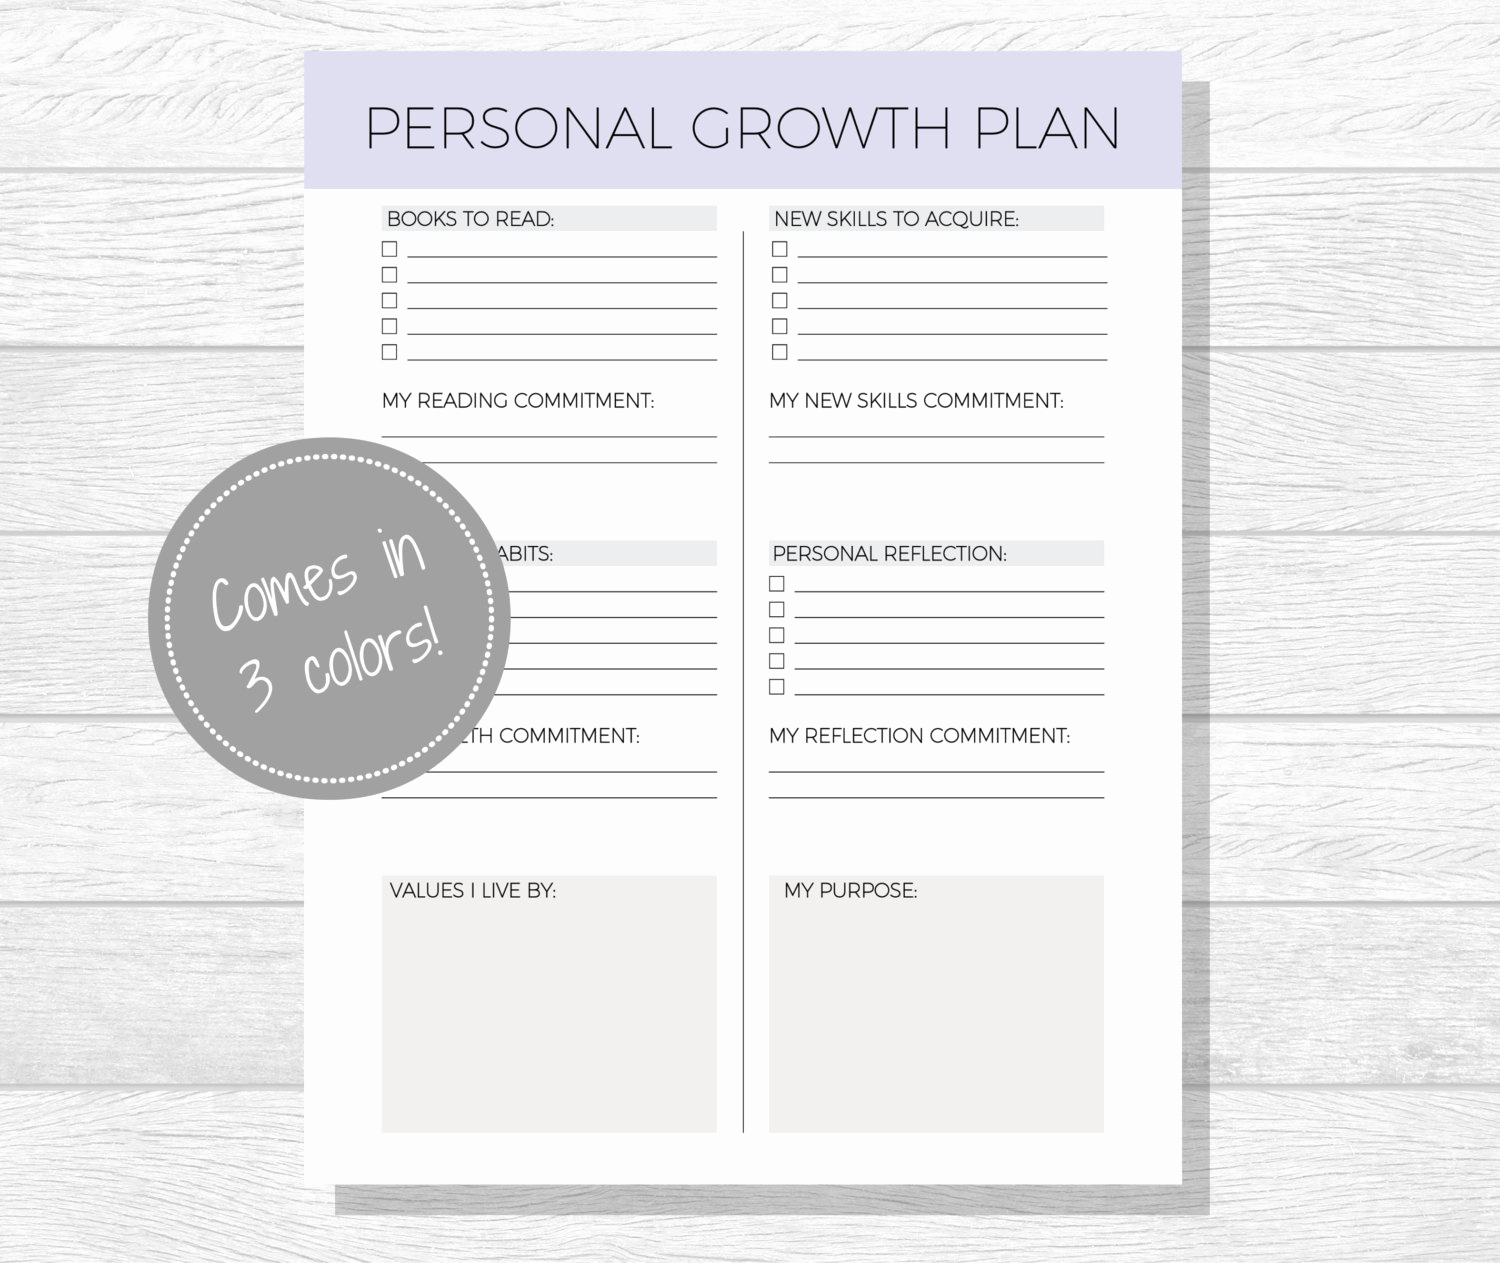 Personal Development Worksheet Awesome Personal Growth Plan Printable Personal Development Goal